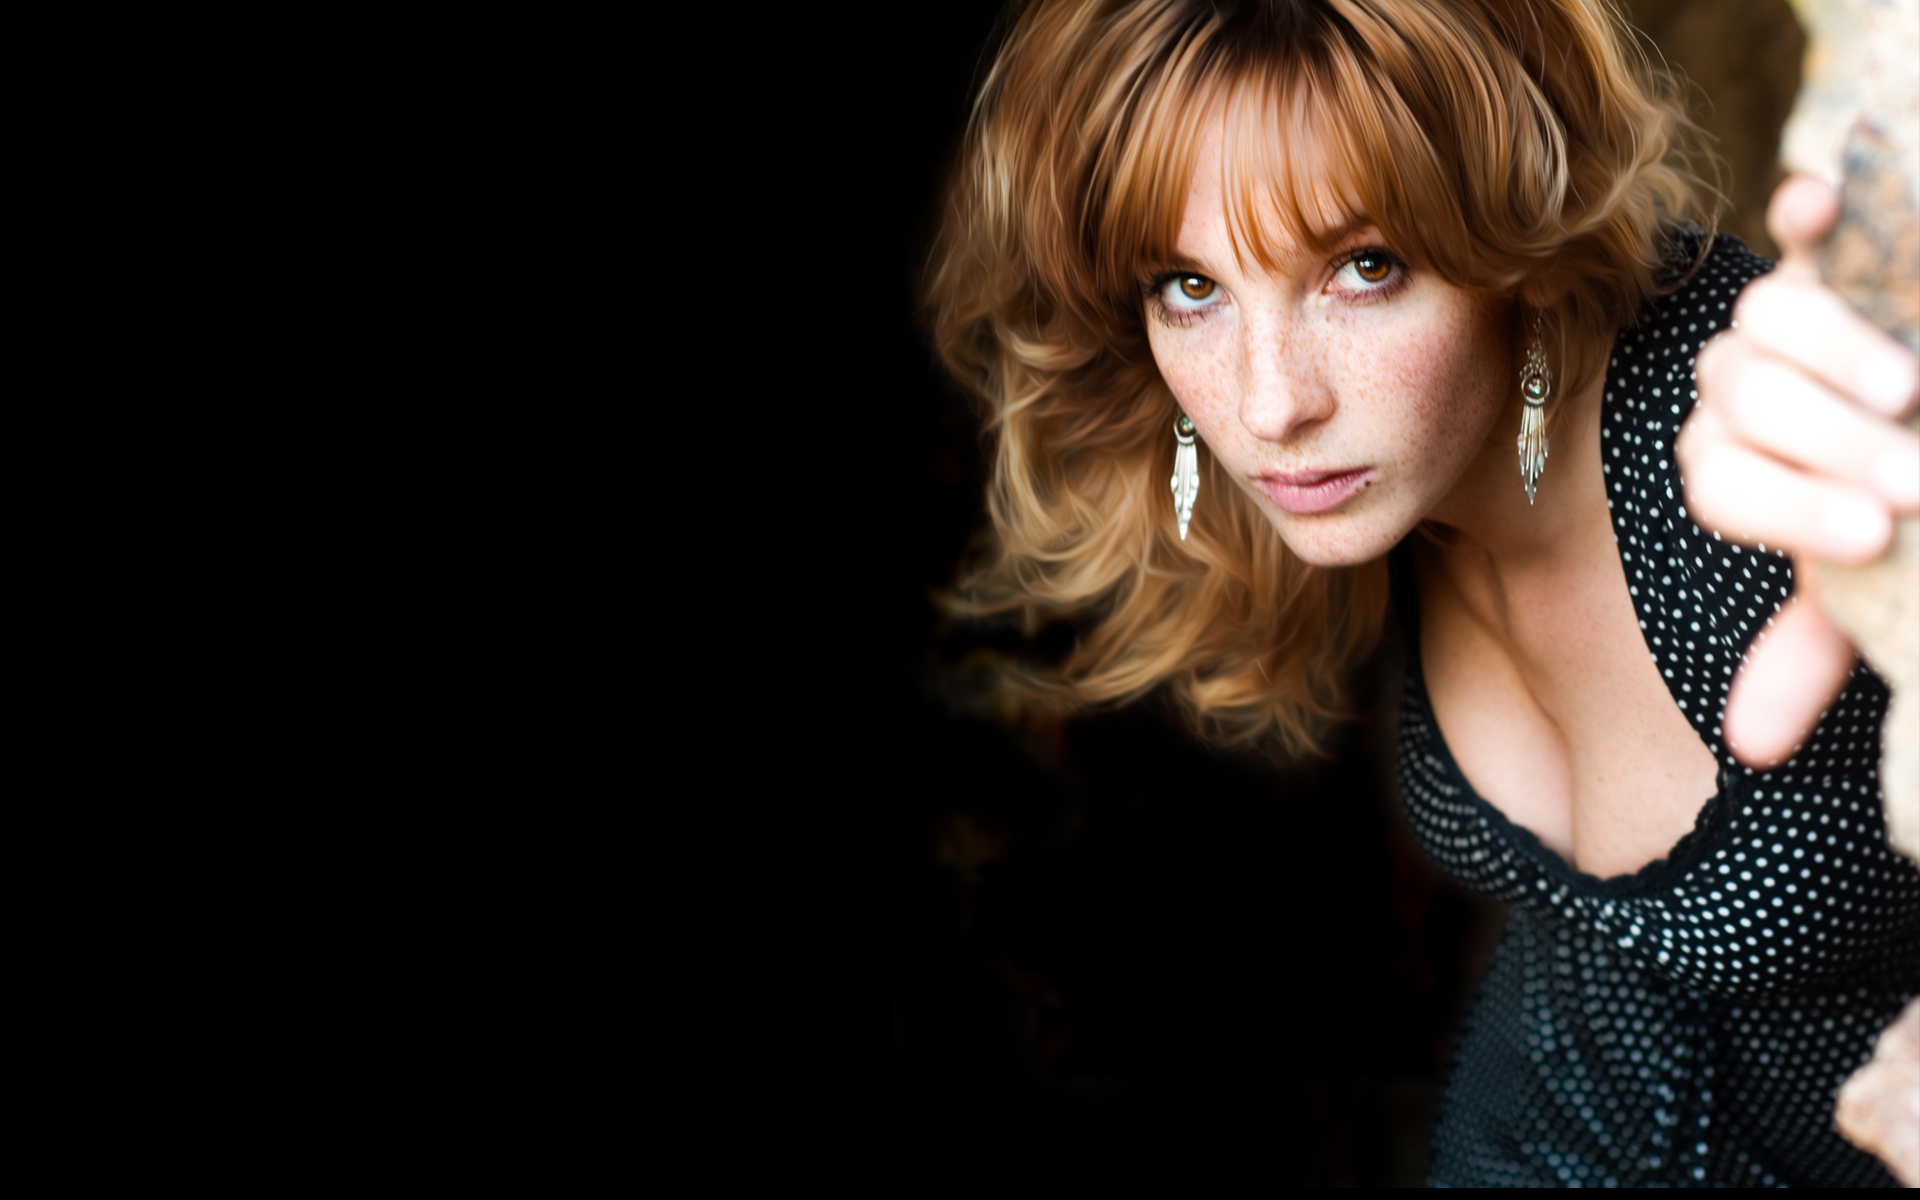 Vica Kerekes Wallpaper